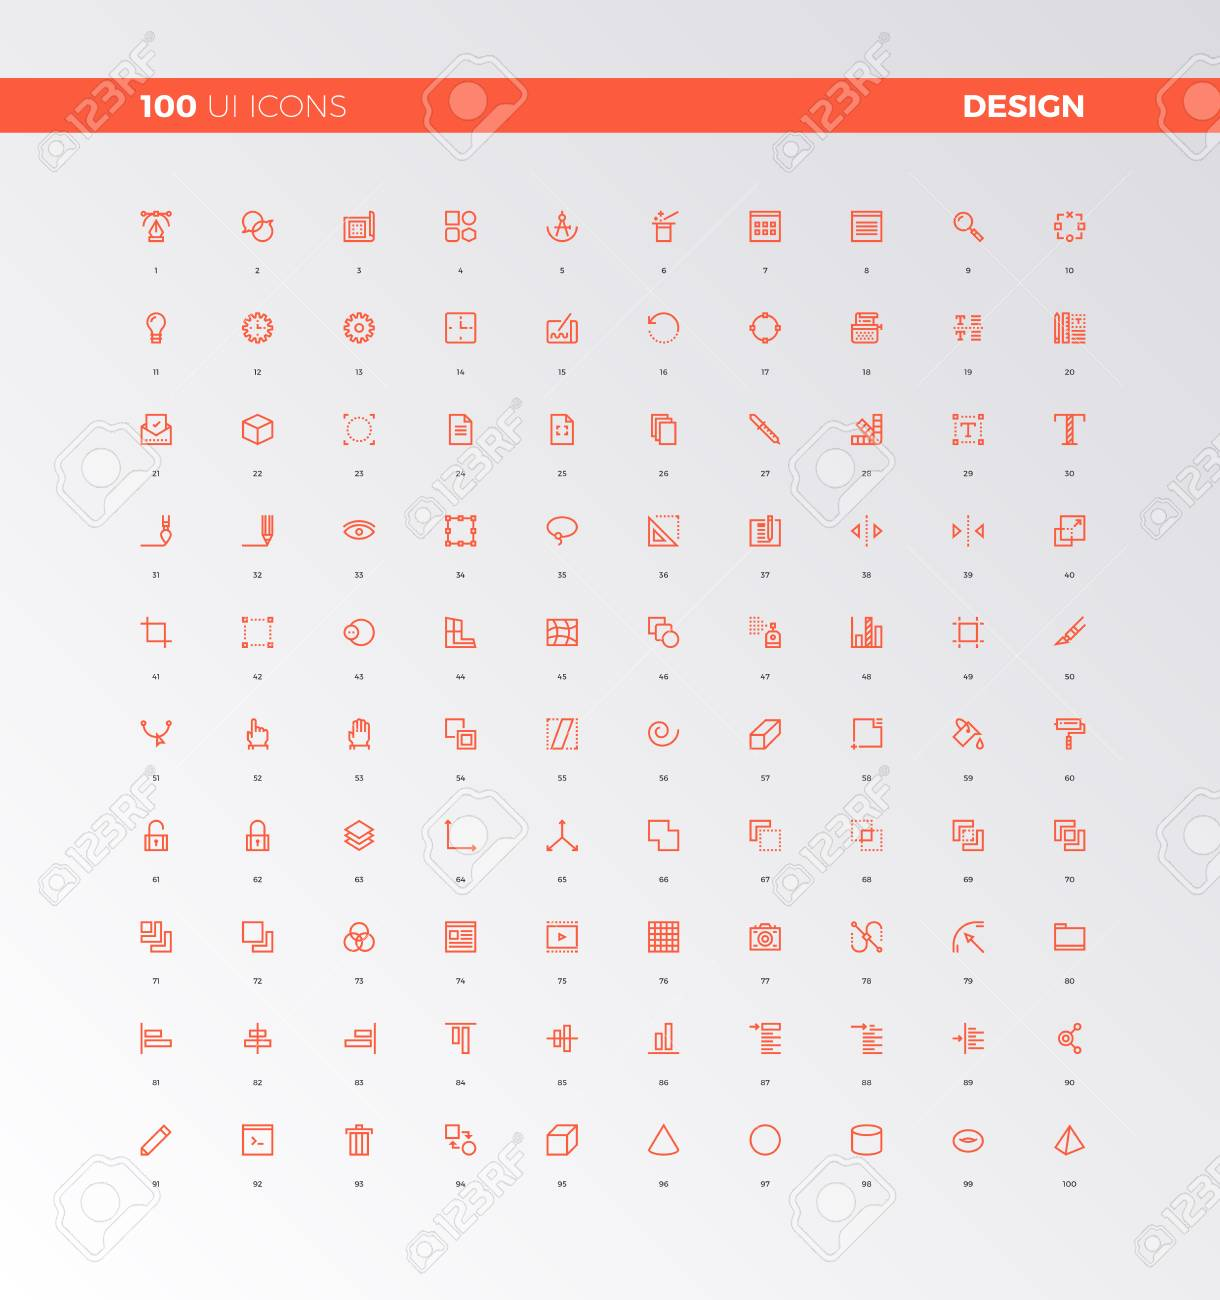 Ui Icons Of Web Design Elements Digital Graphics Tools Ux Pictograms Royalty Free Cliparts Vectors And Stock Illustration Image 71545705